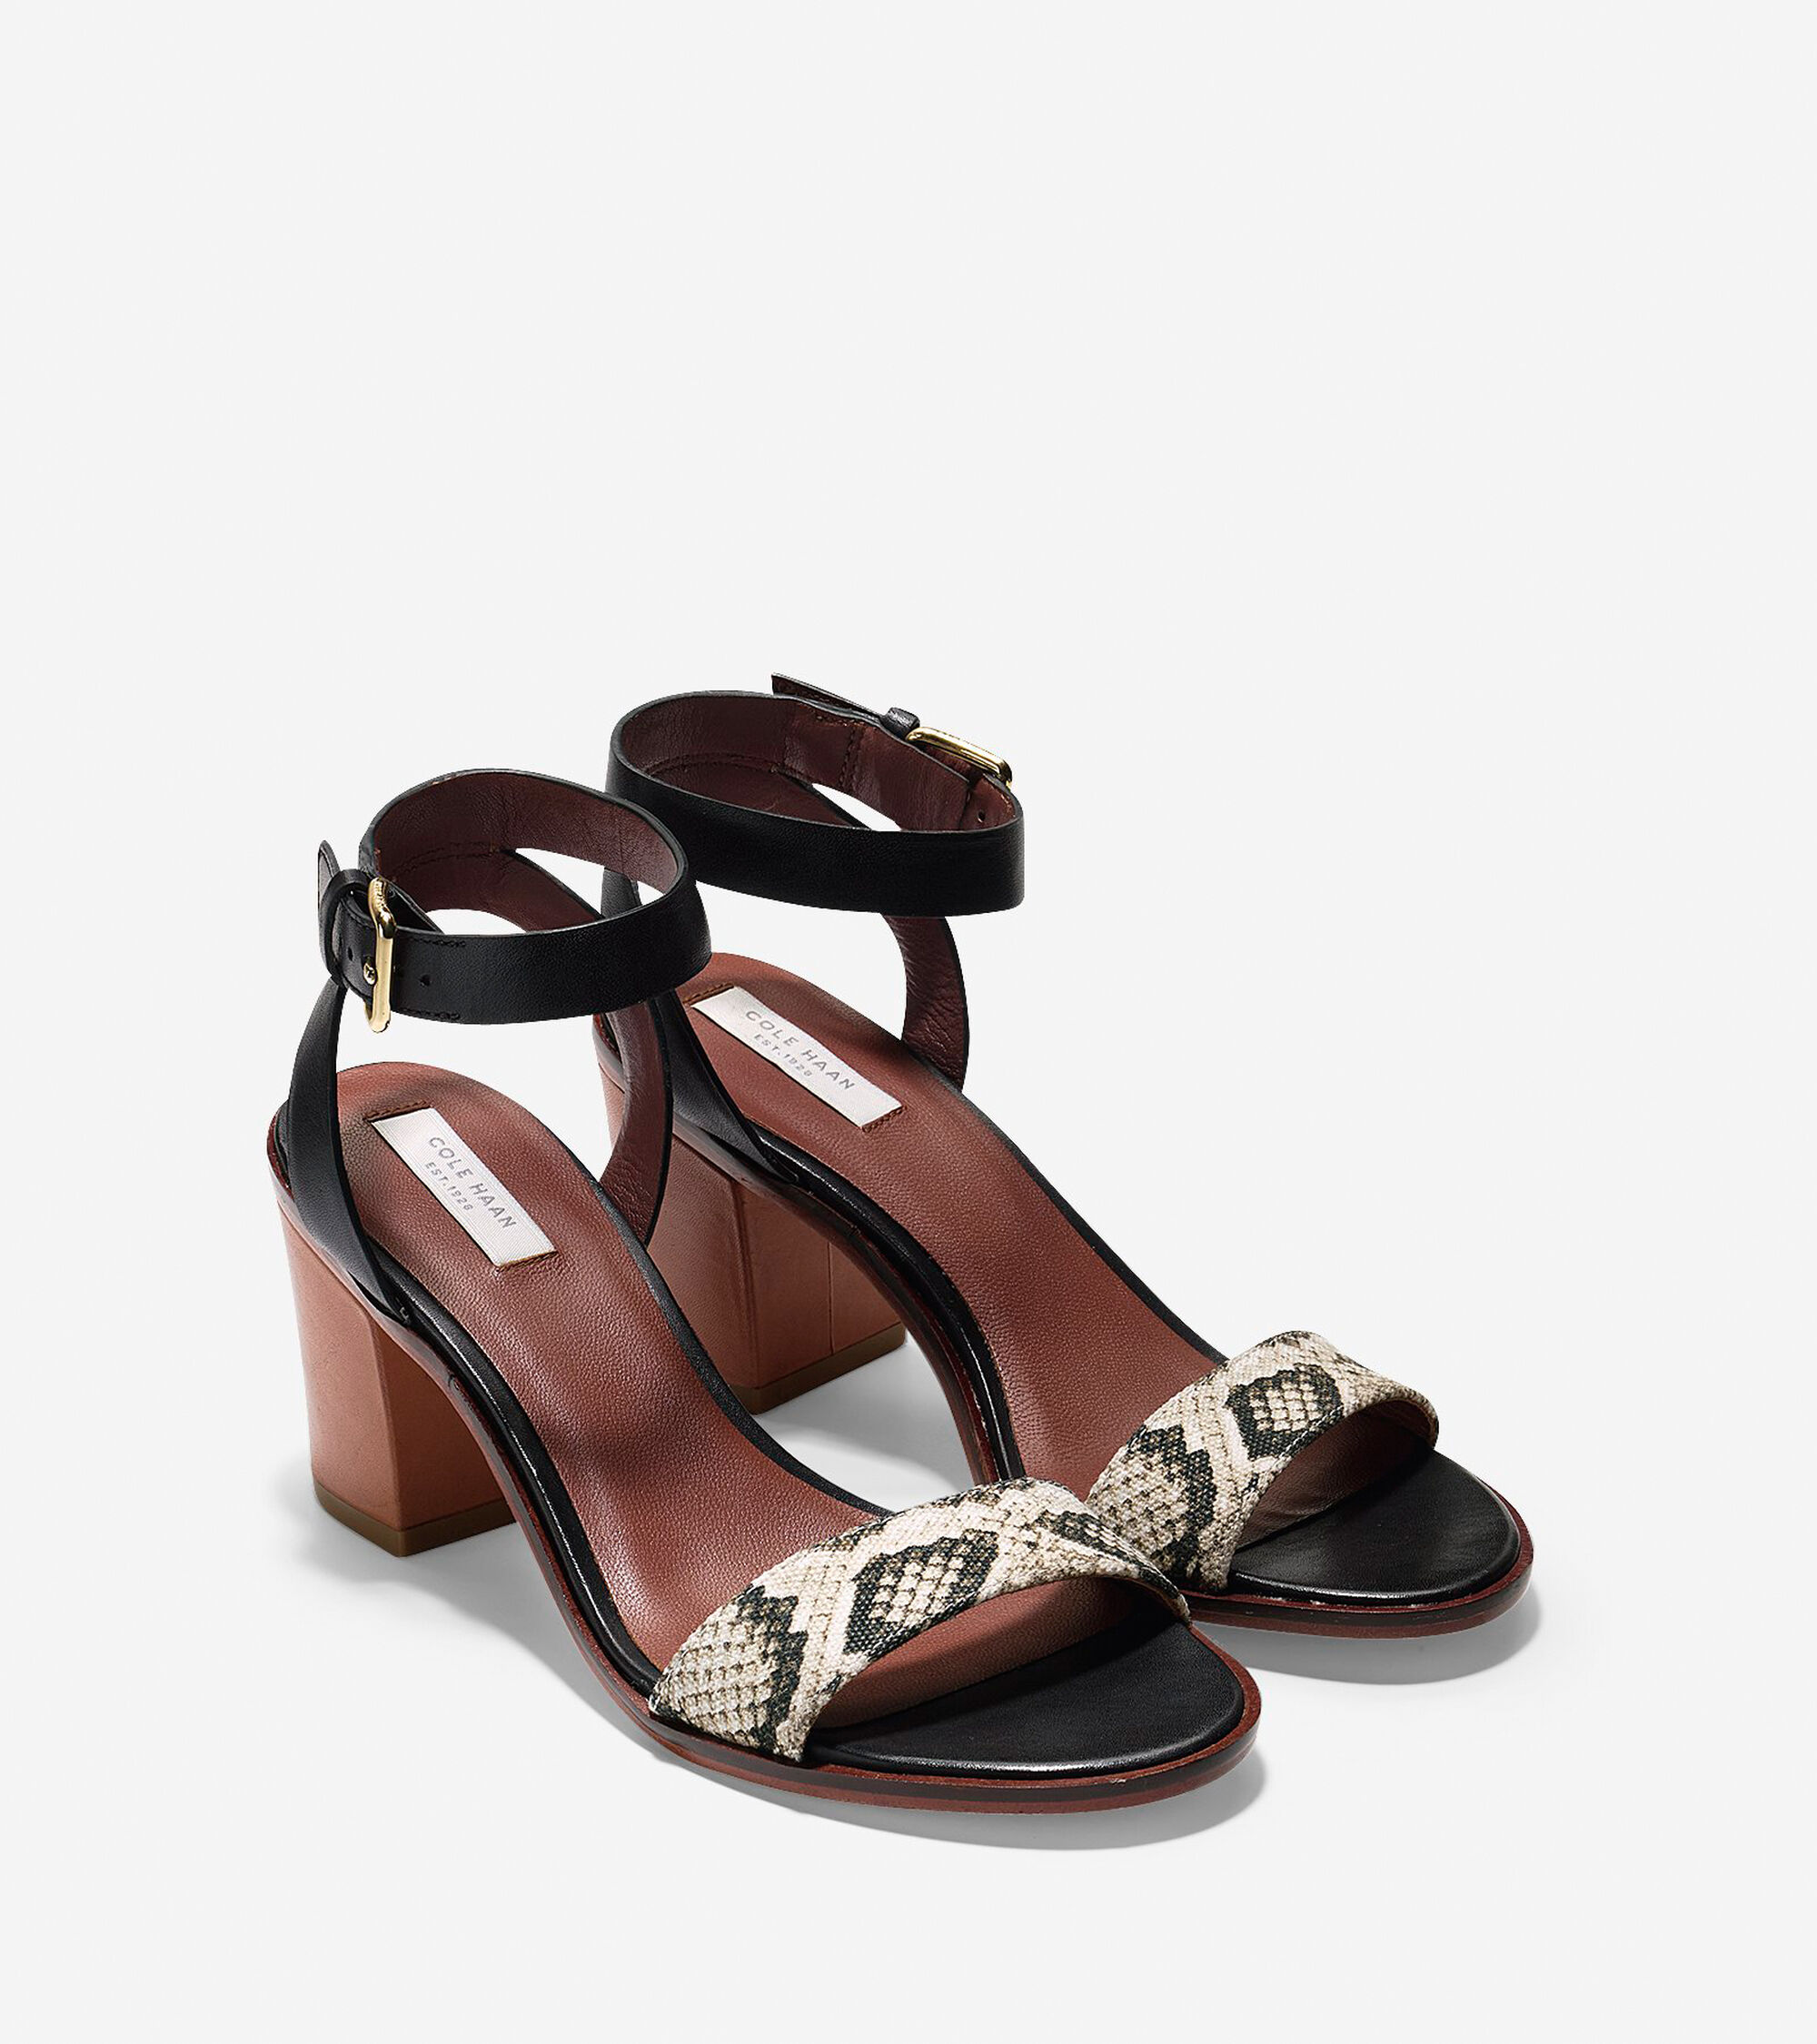 8397d7307181 Cambon Mid Sandals 65mm in Black-Roccia Snake